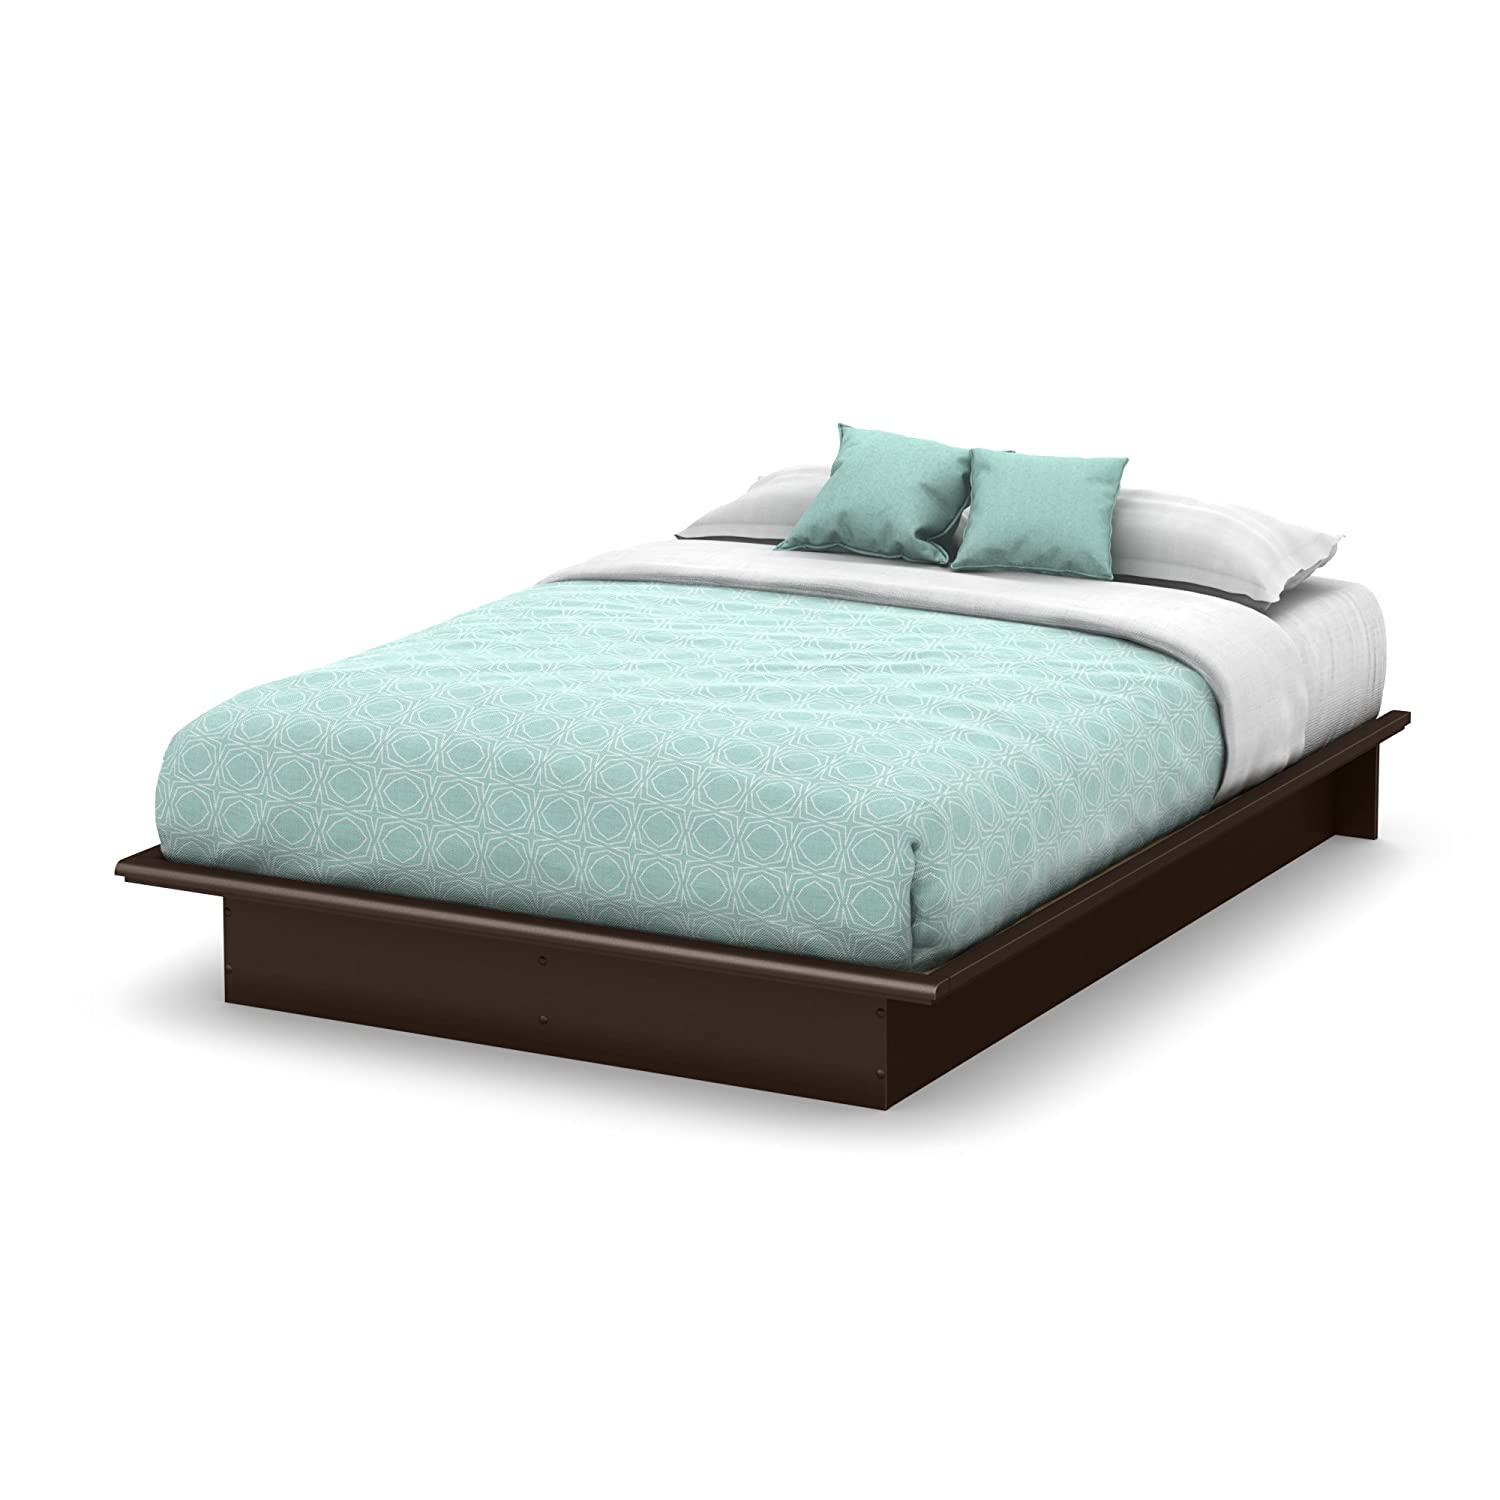 heavy duty bed frames for obese people and the overweight